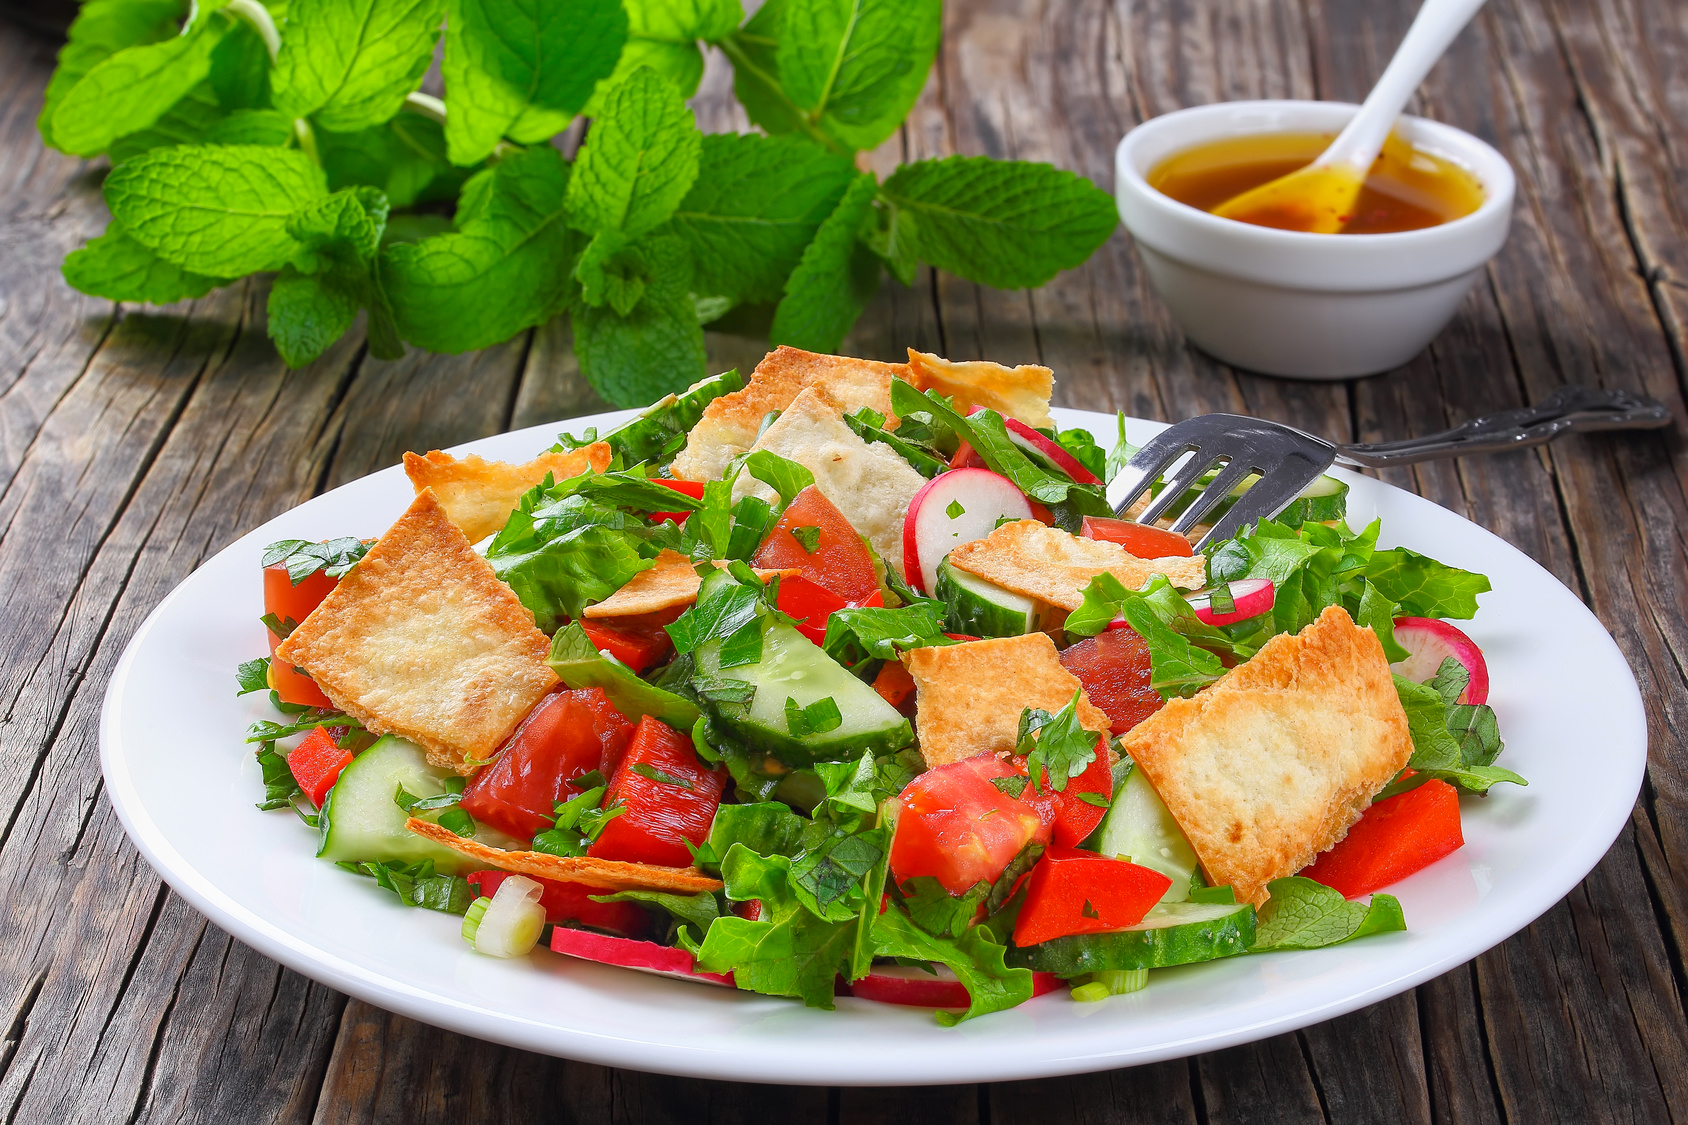 Italian panzanella-style bread salad with tomatoes and basil